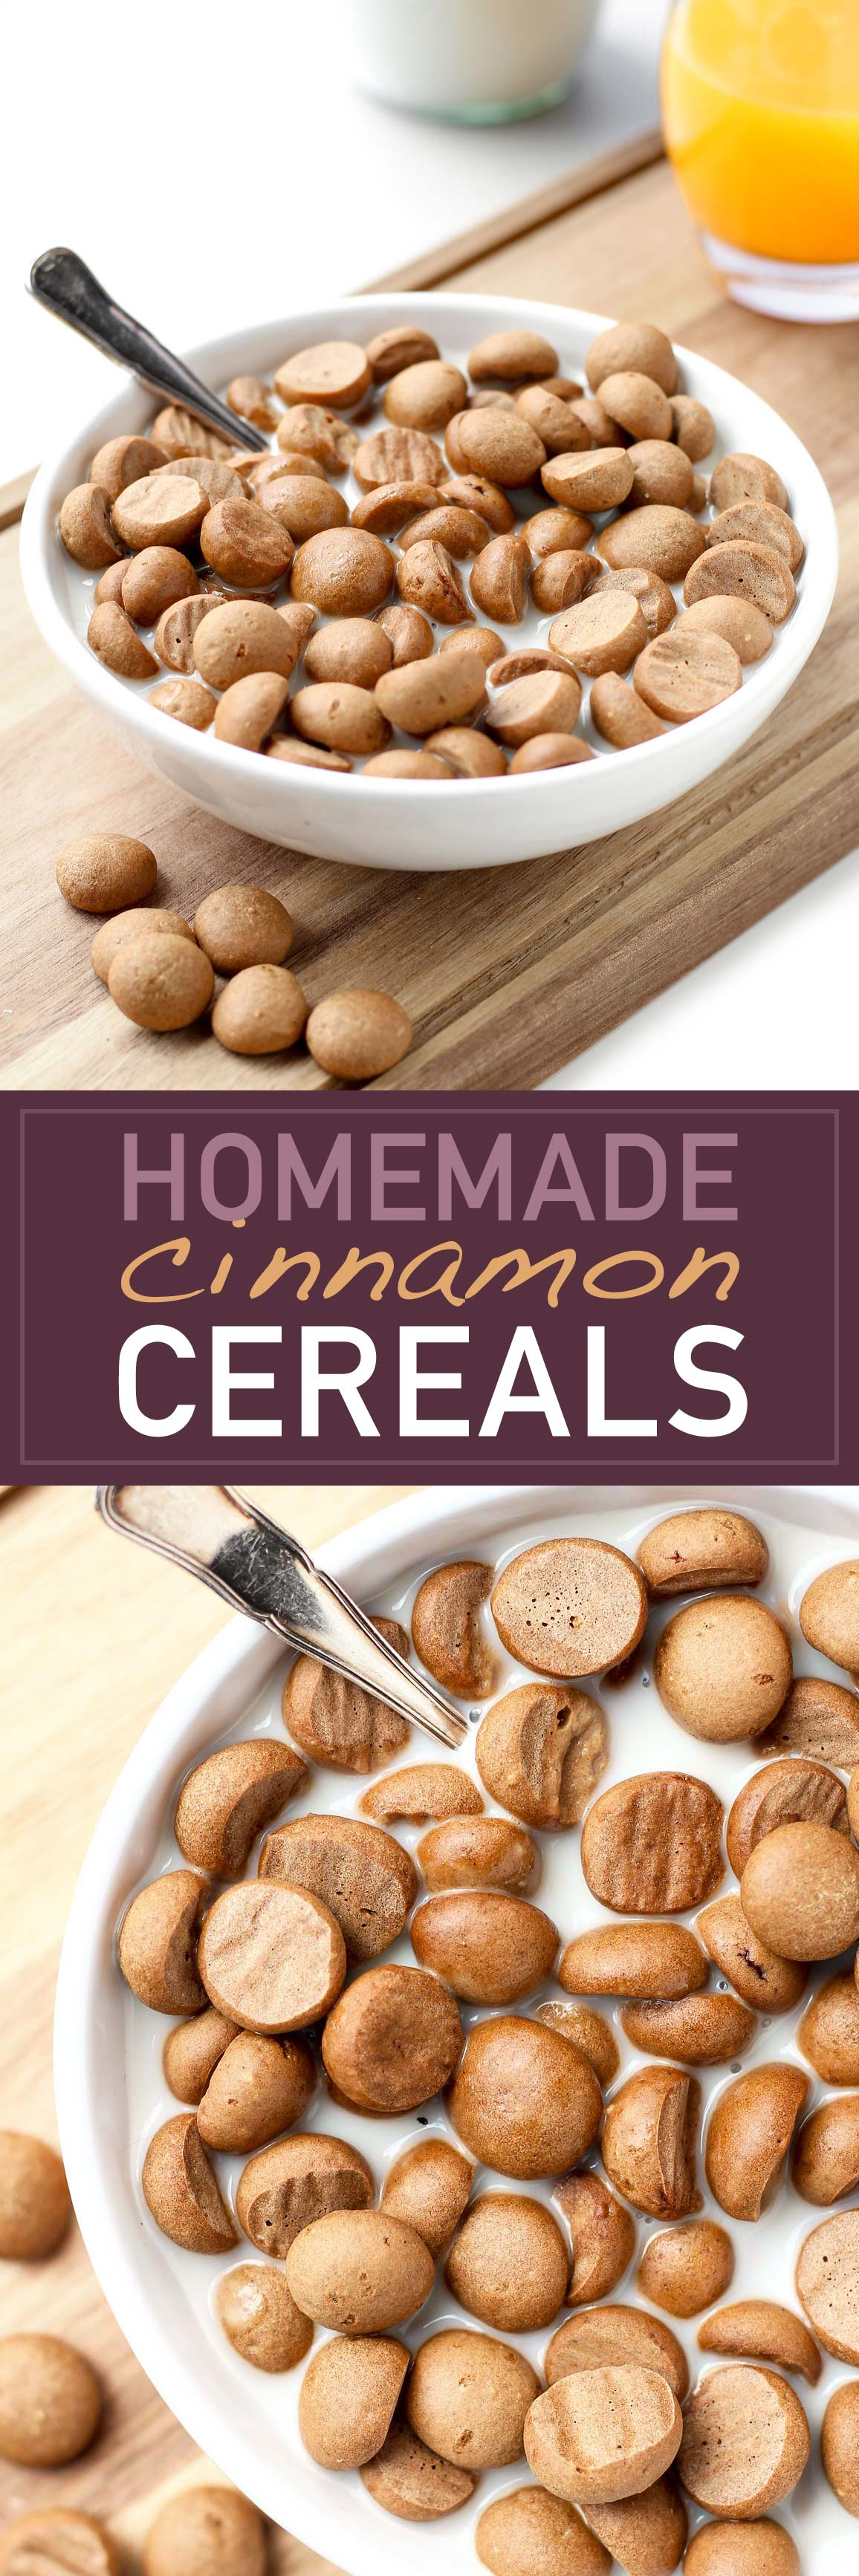 The best vegan cinnamon cereals full of plants best vegan cinnamon cereals pin ccuart Choice Image